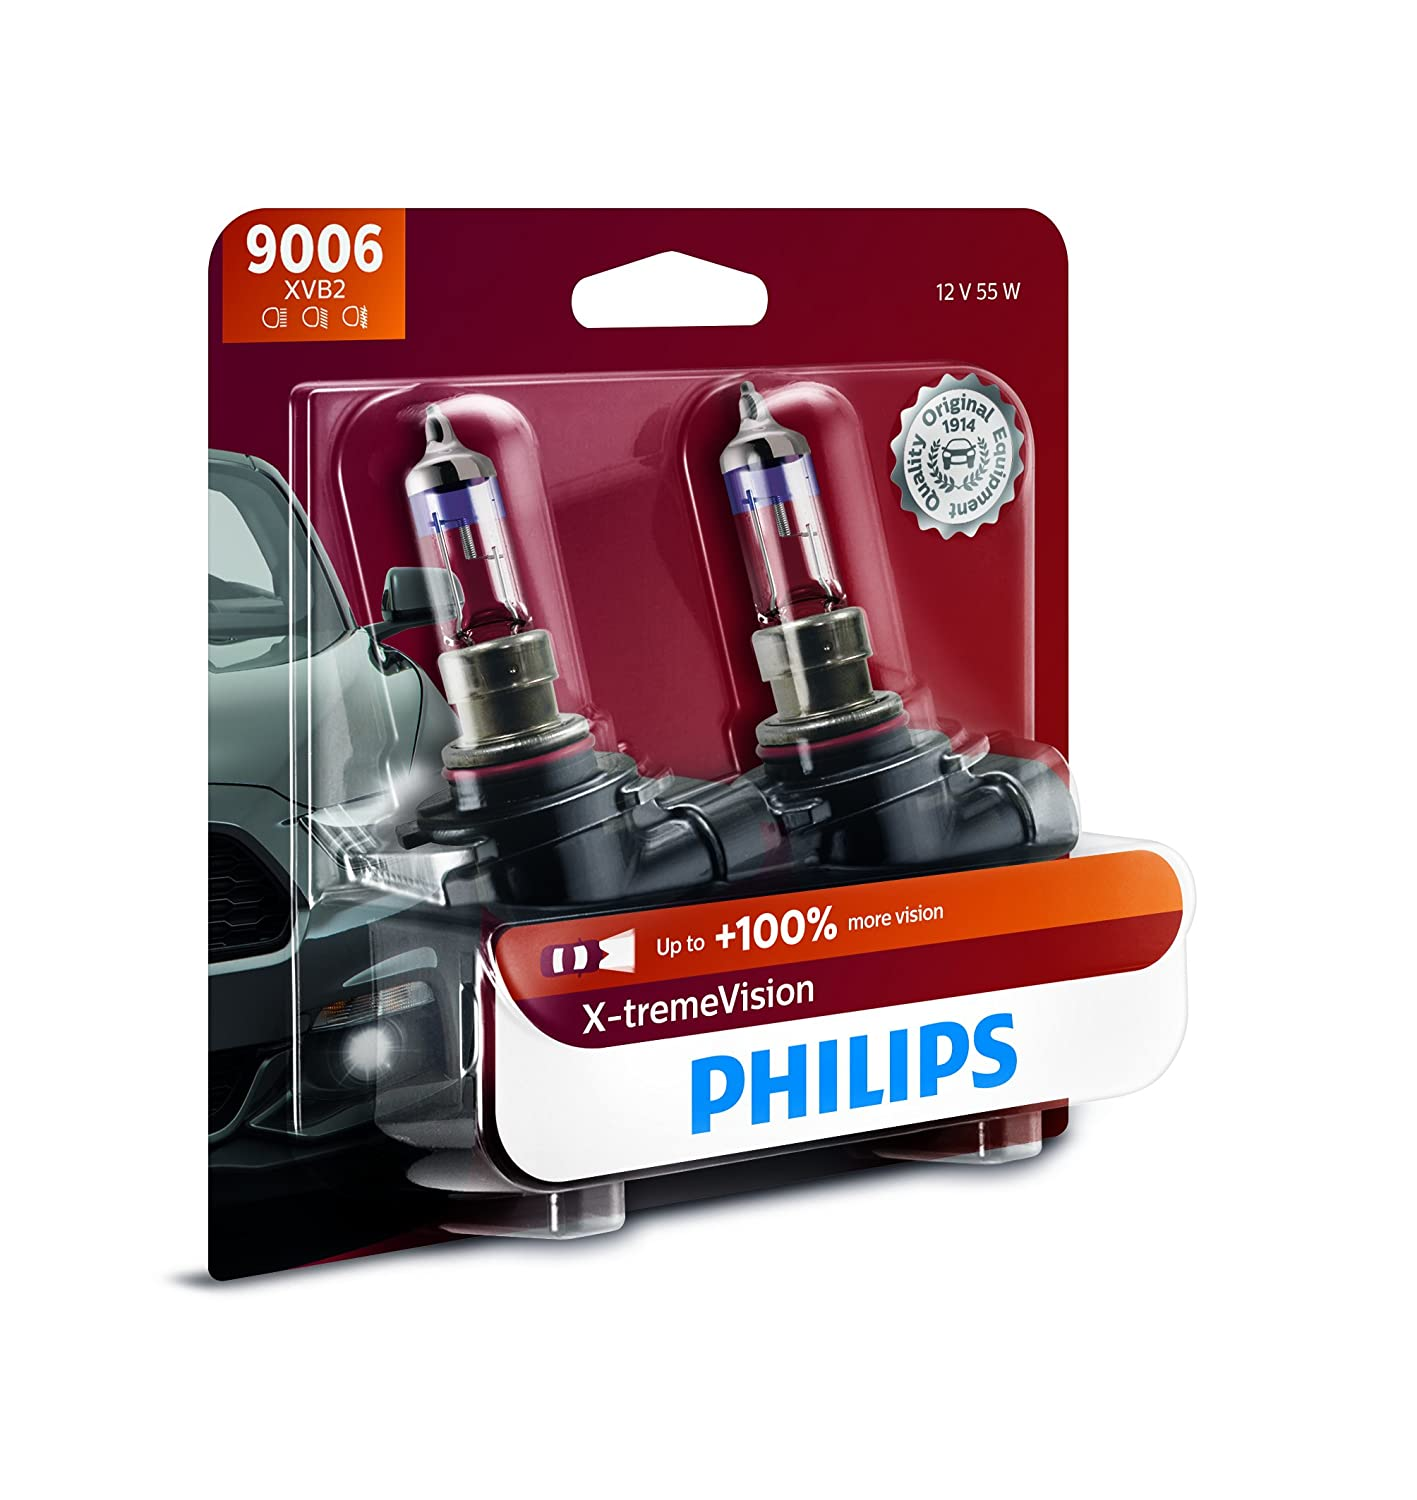 Philips H7 X-tremeVision Upgrade Headlight Bulb with up to 100% More Vision, 2 Pack 12972XVB2